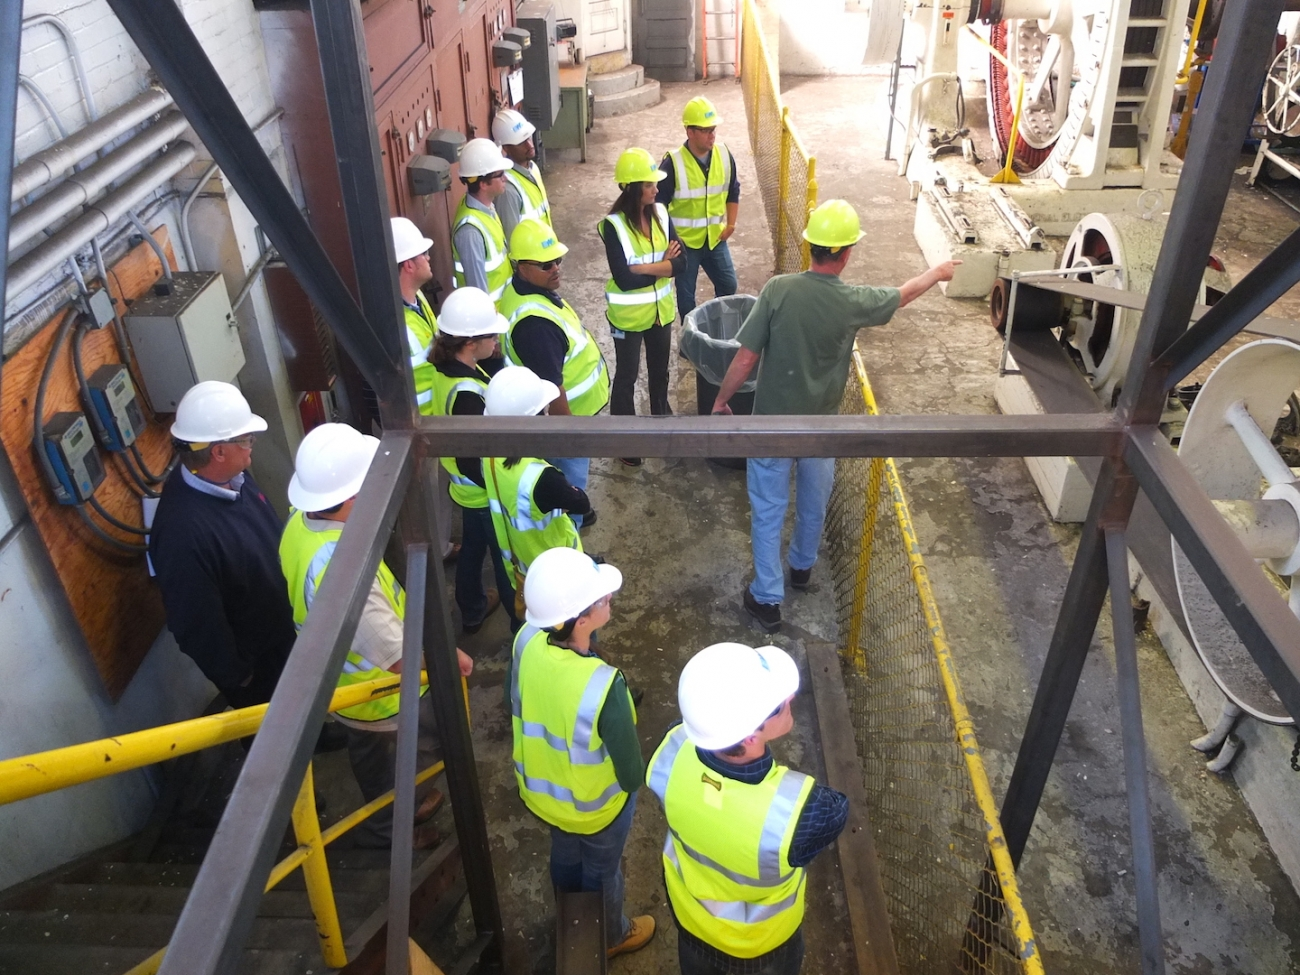 A group of interns wearing BWL uniforms and hard hats listens as an employee teaches them about machinery.